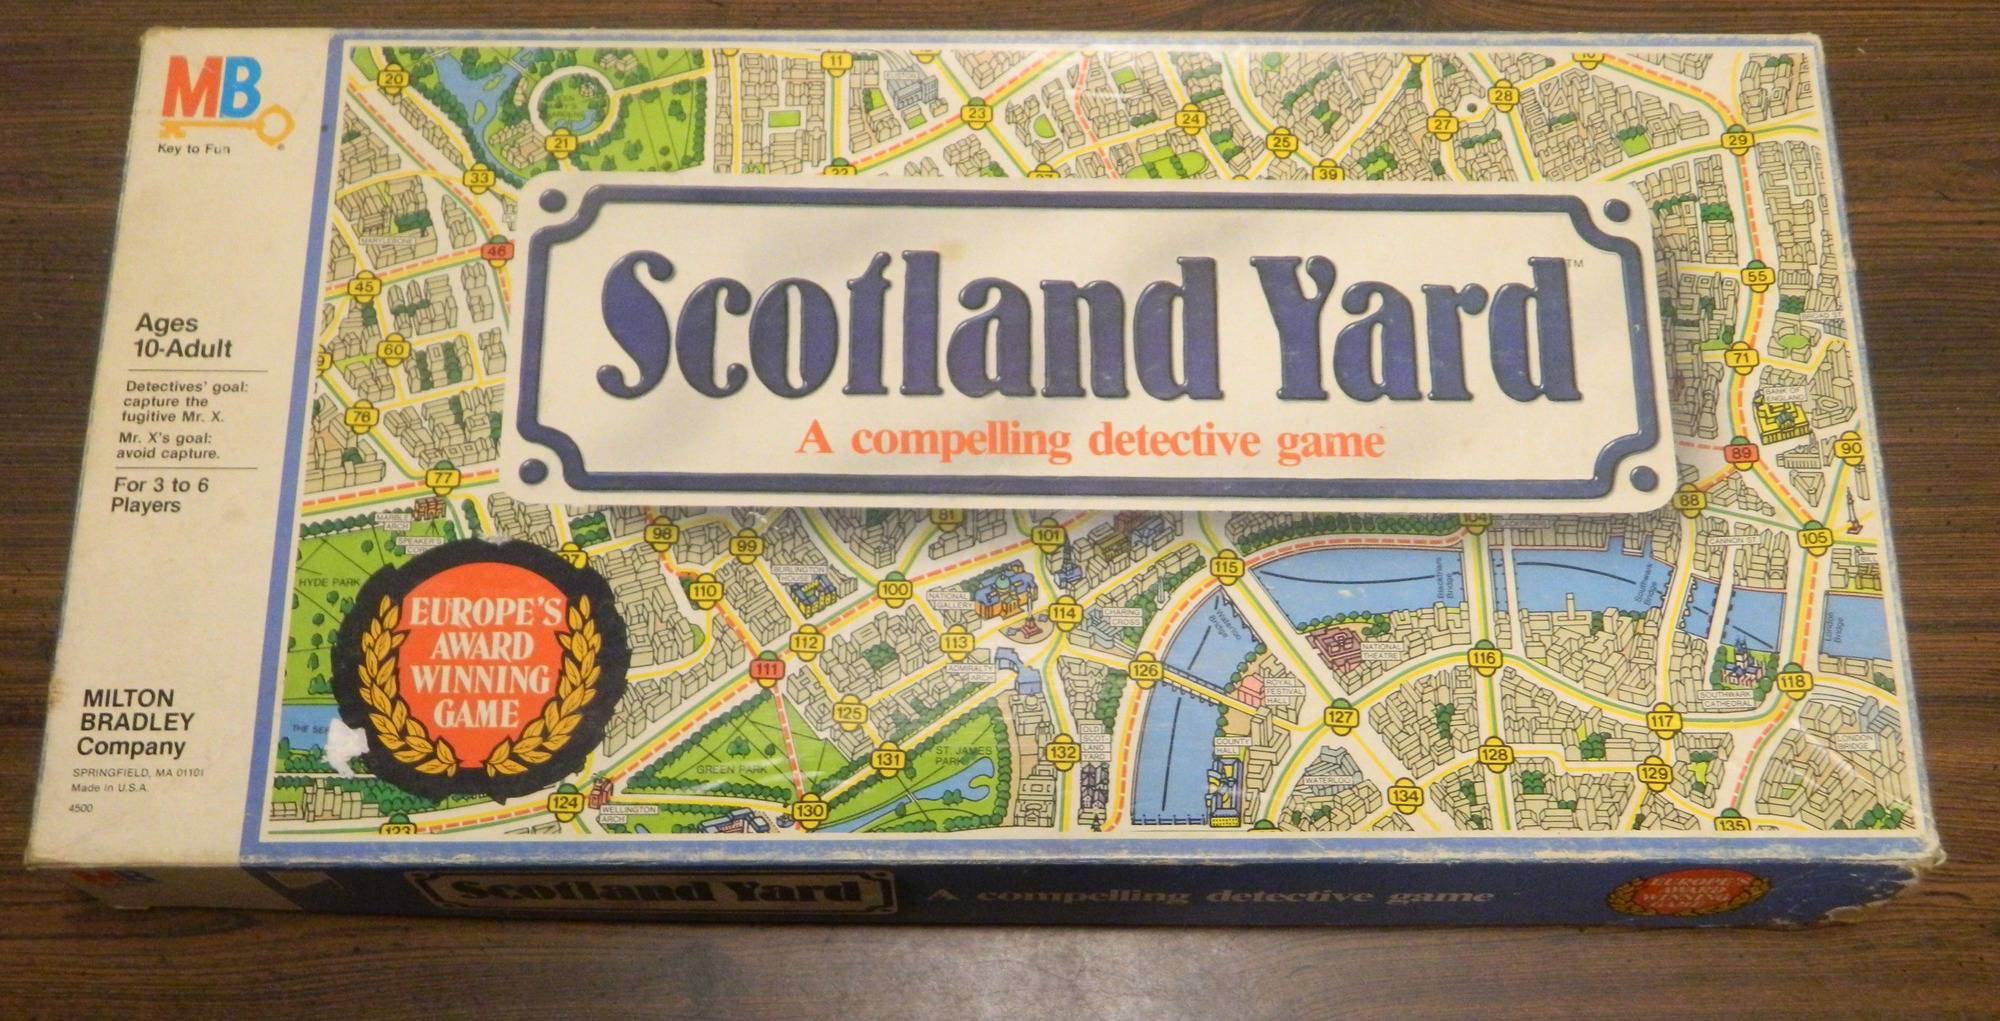 Box for Scotland Yard